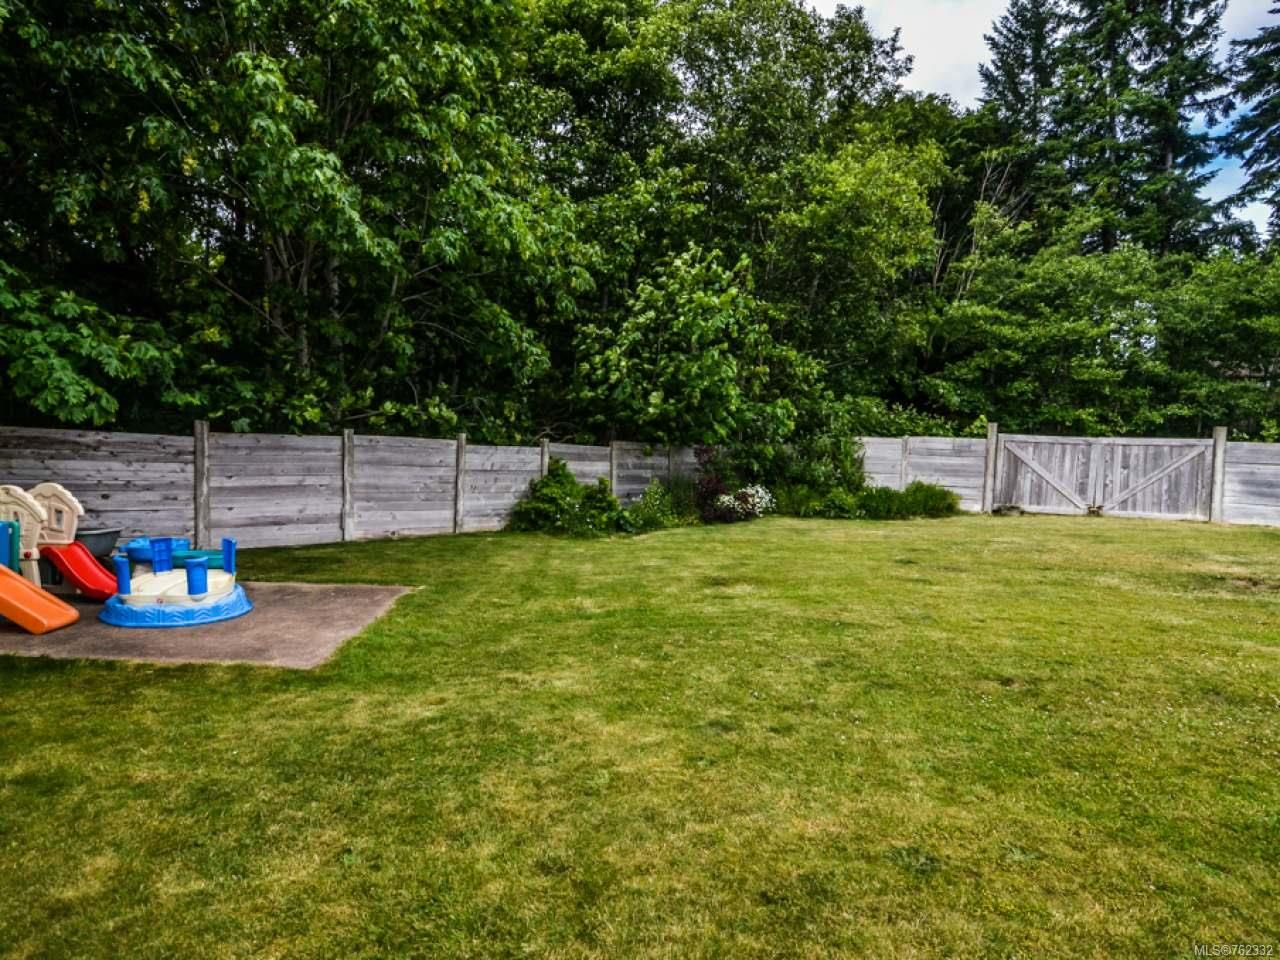 Photo 4: Photos: 1656 Galerno Rd in CAMPBELL RIVER: CR Campbell River Central House for sale (Campbell River)  : MLS®# 762332